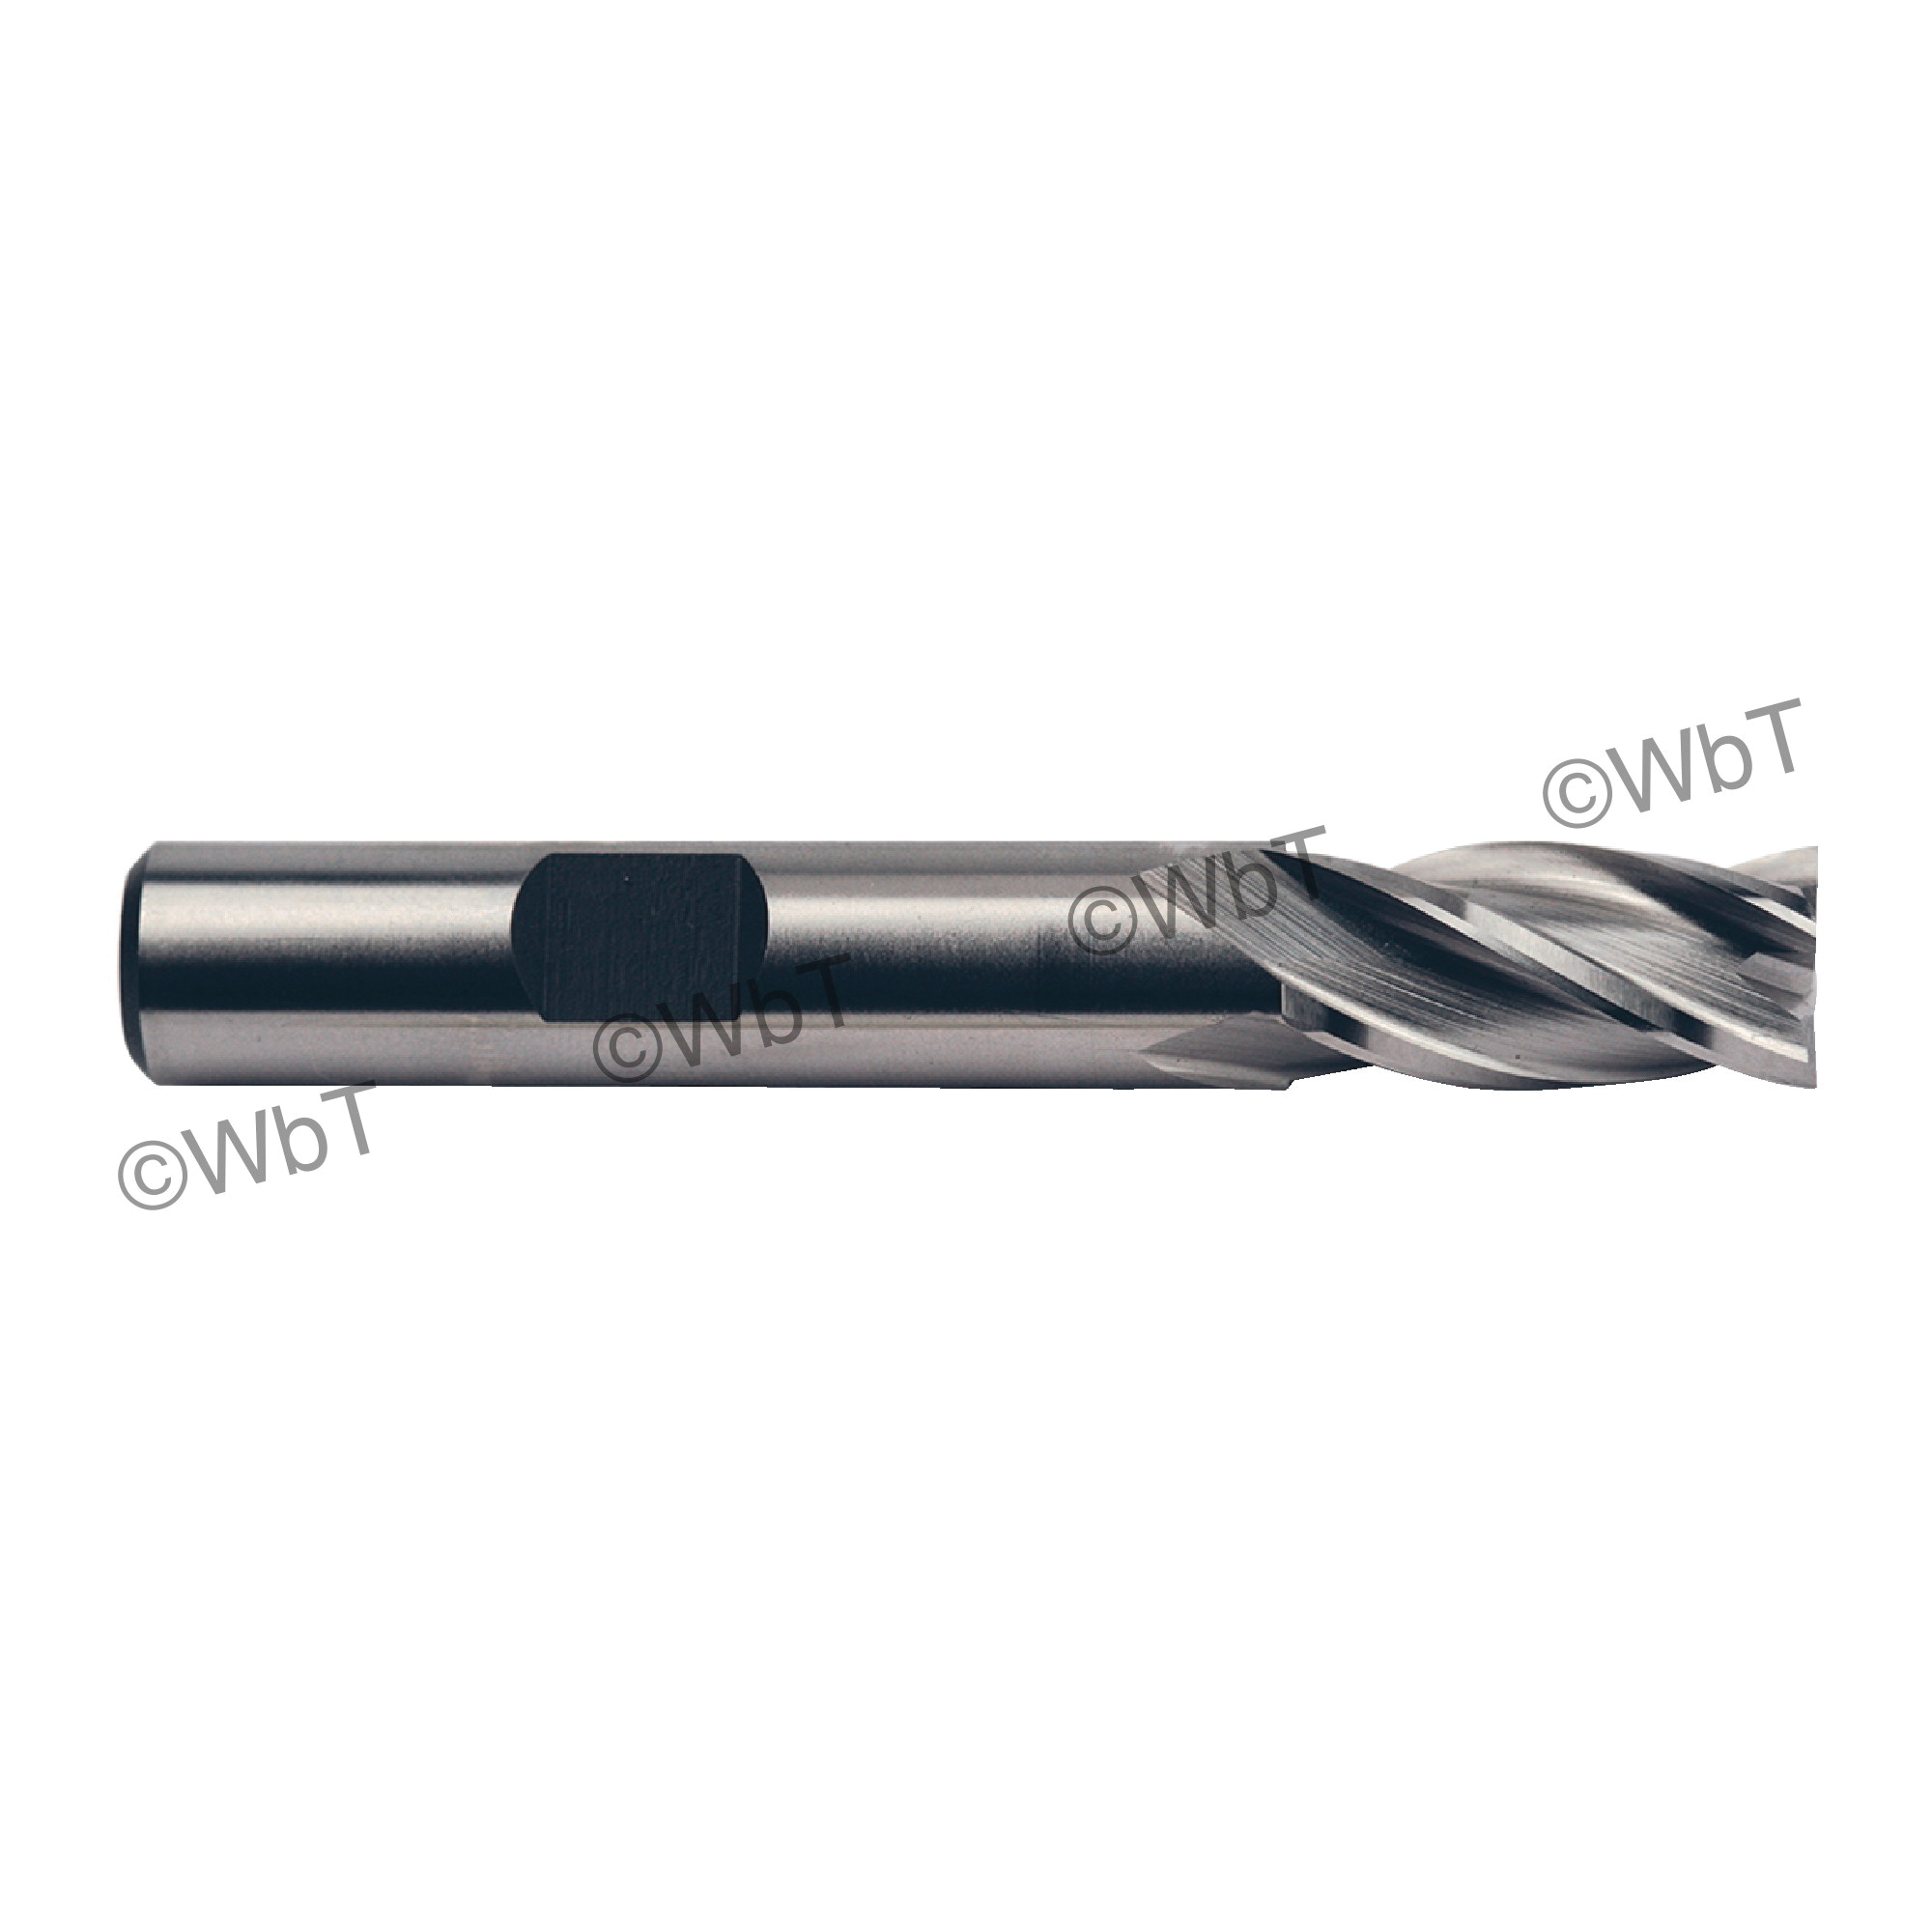 TTC 08-015-060 D5 Center Cutting Standard Length Single End Mill, 1/4 in Dia Cutter, 5/8 in Length of Cut, 4 Flutes, 3/8 in Dia Shank, 2-7/16 in OAL, Bright